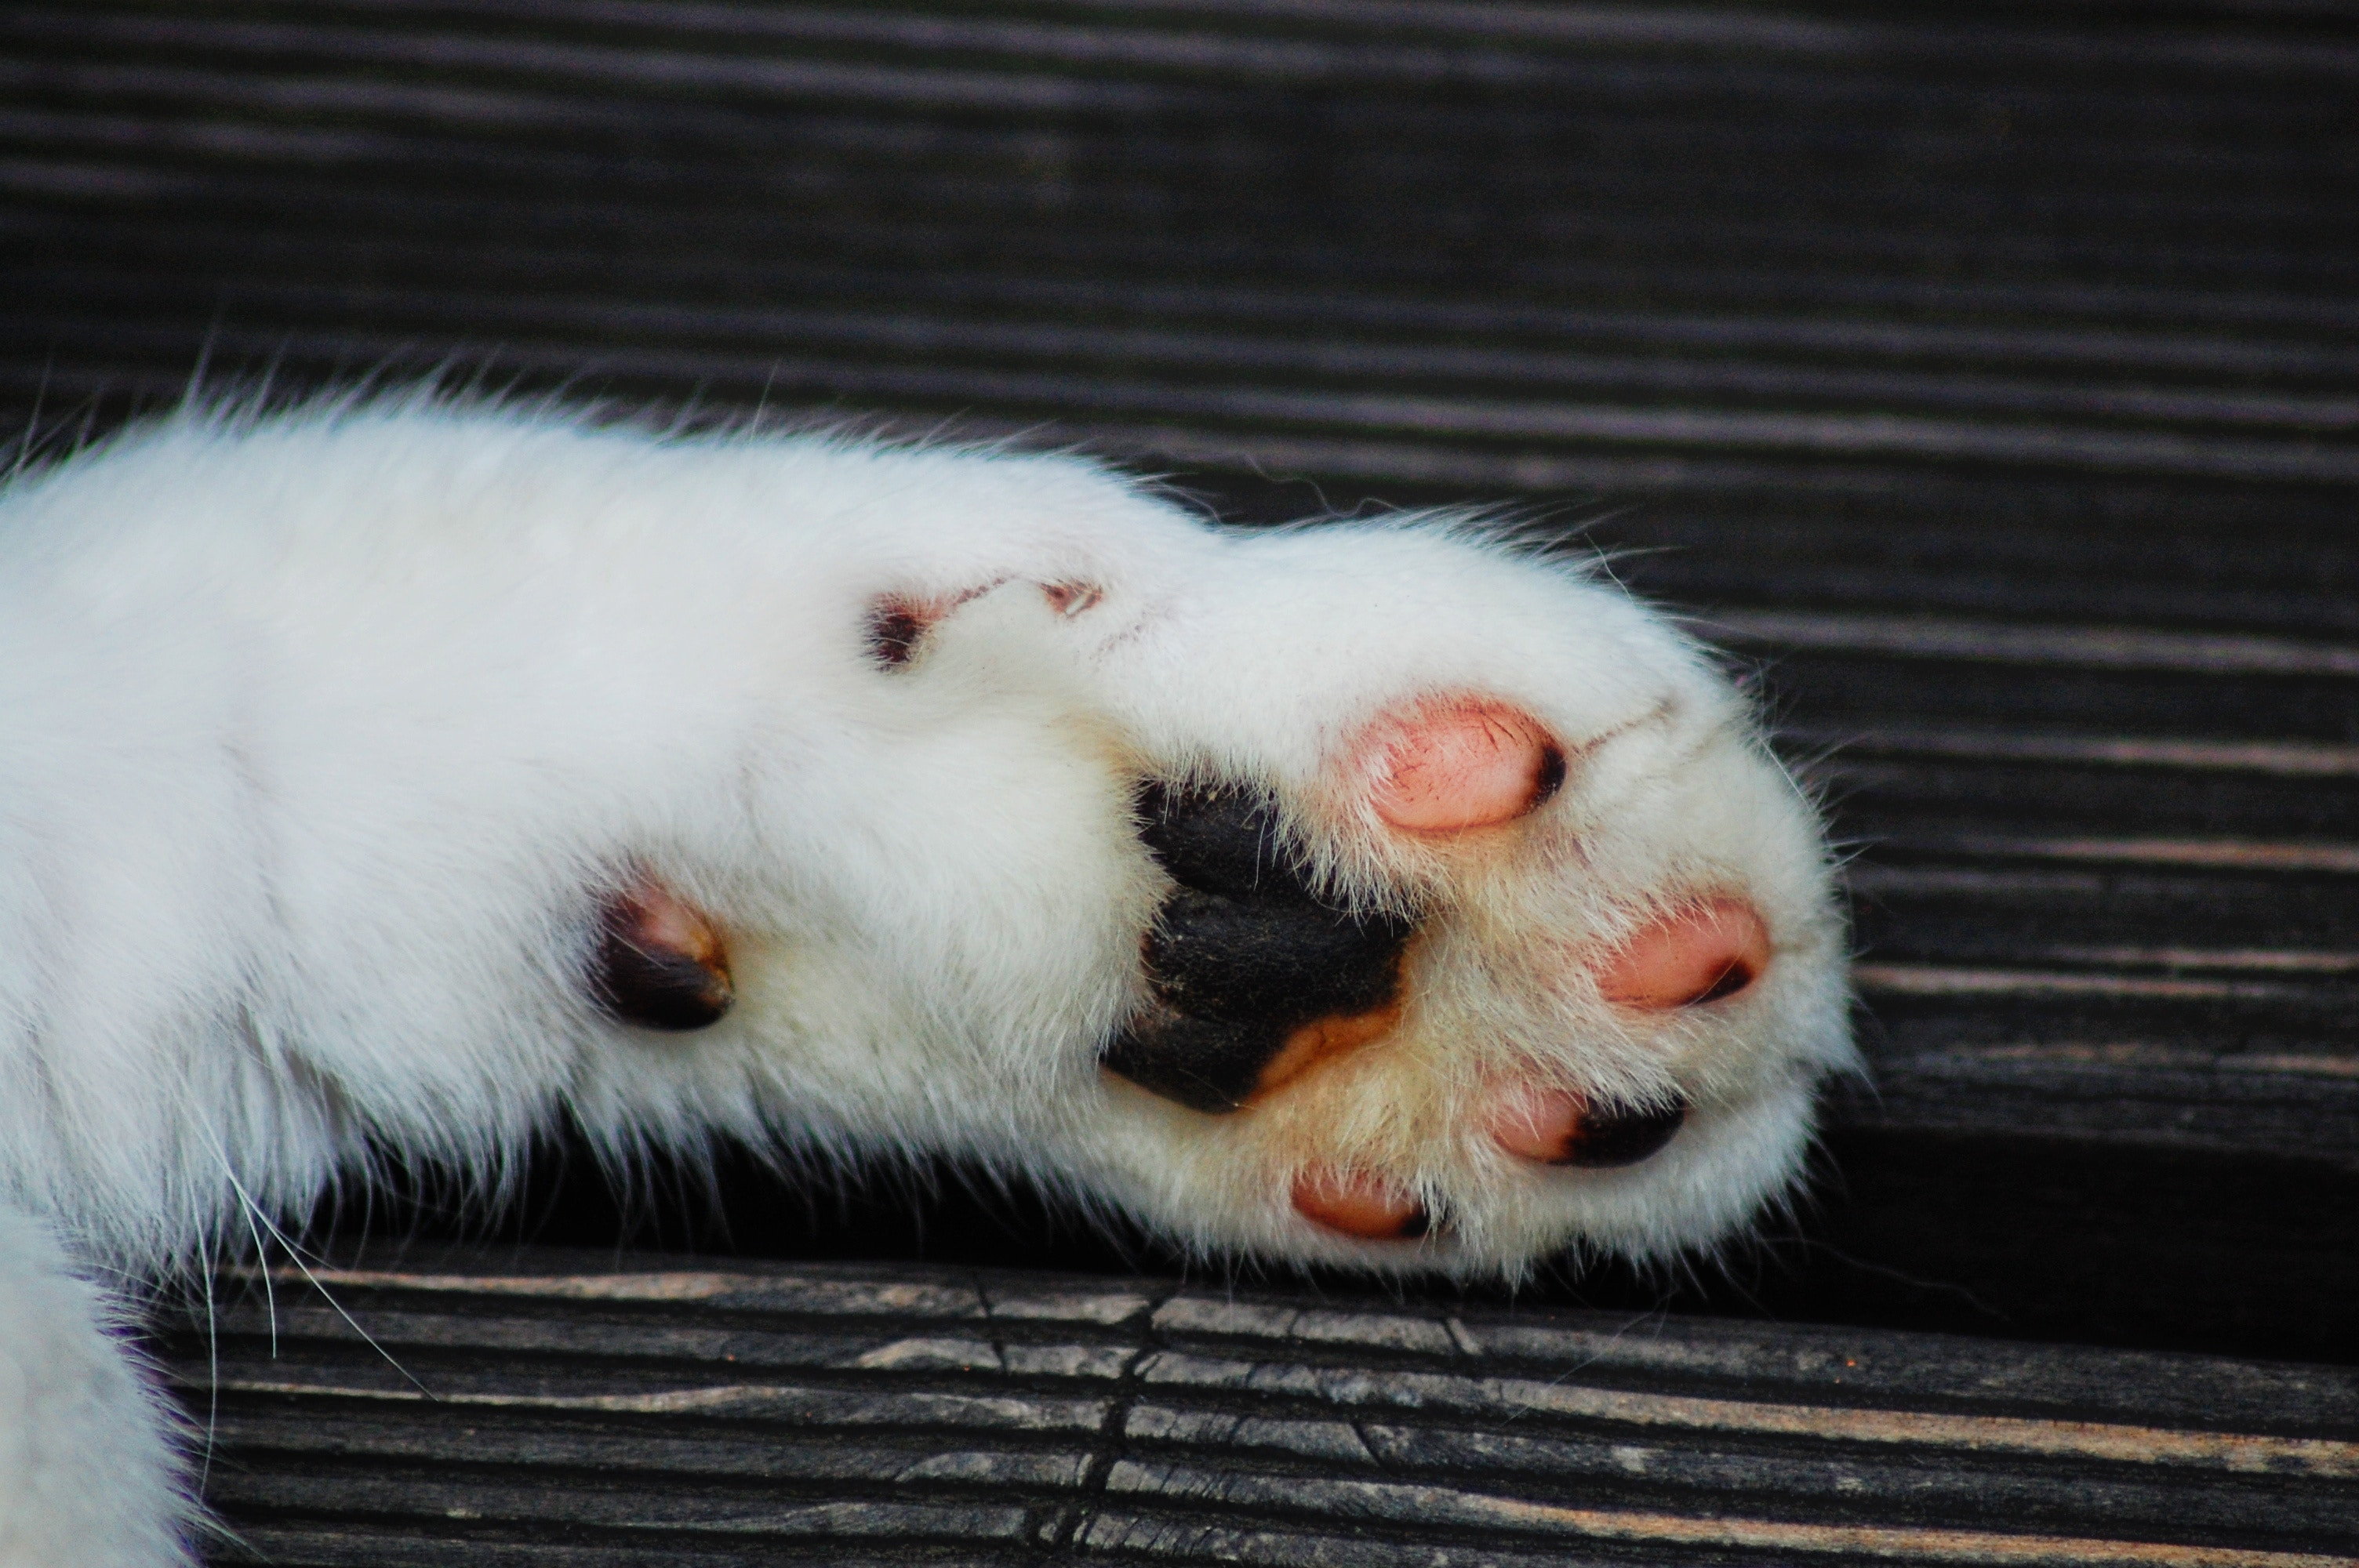 120371 download wallpaper Animals, Paw, Cat, Stains, Spots screensavers and pictures for free